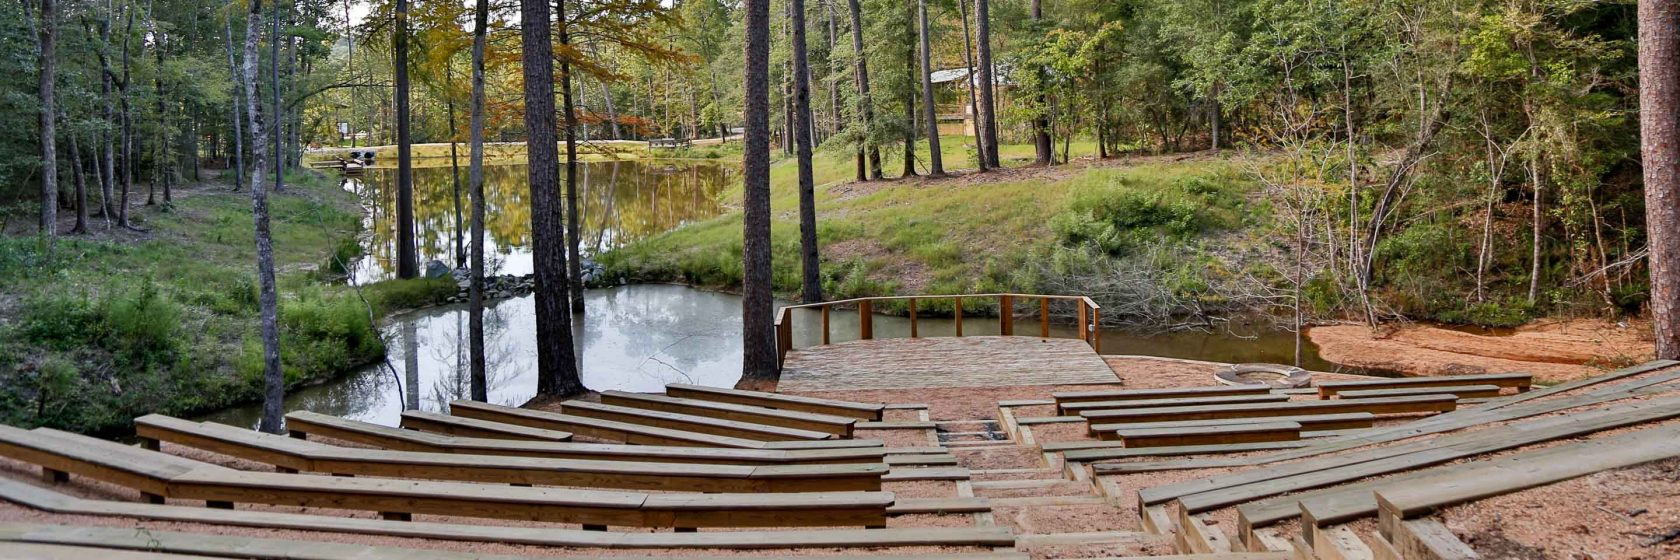 Cypress grove amphitheater for group rentals retreats at for Magnolia homes cypress grove